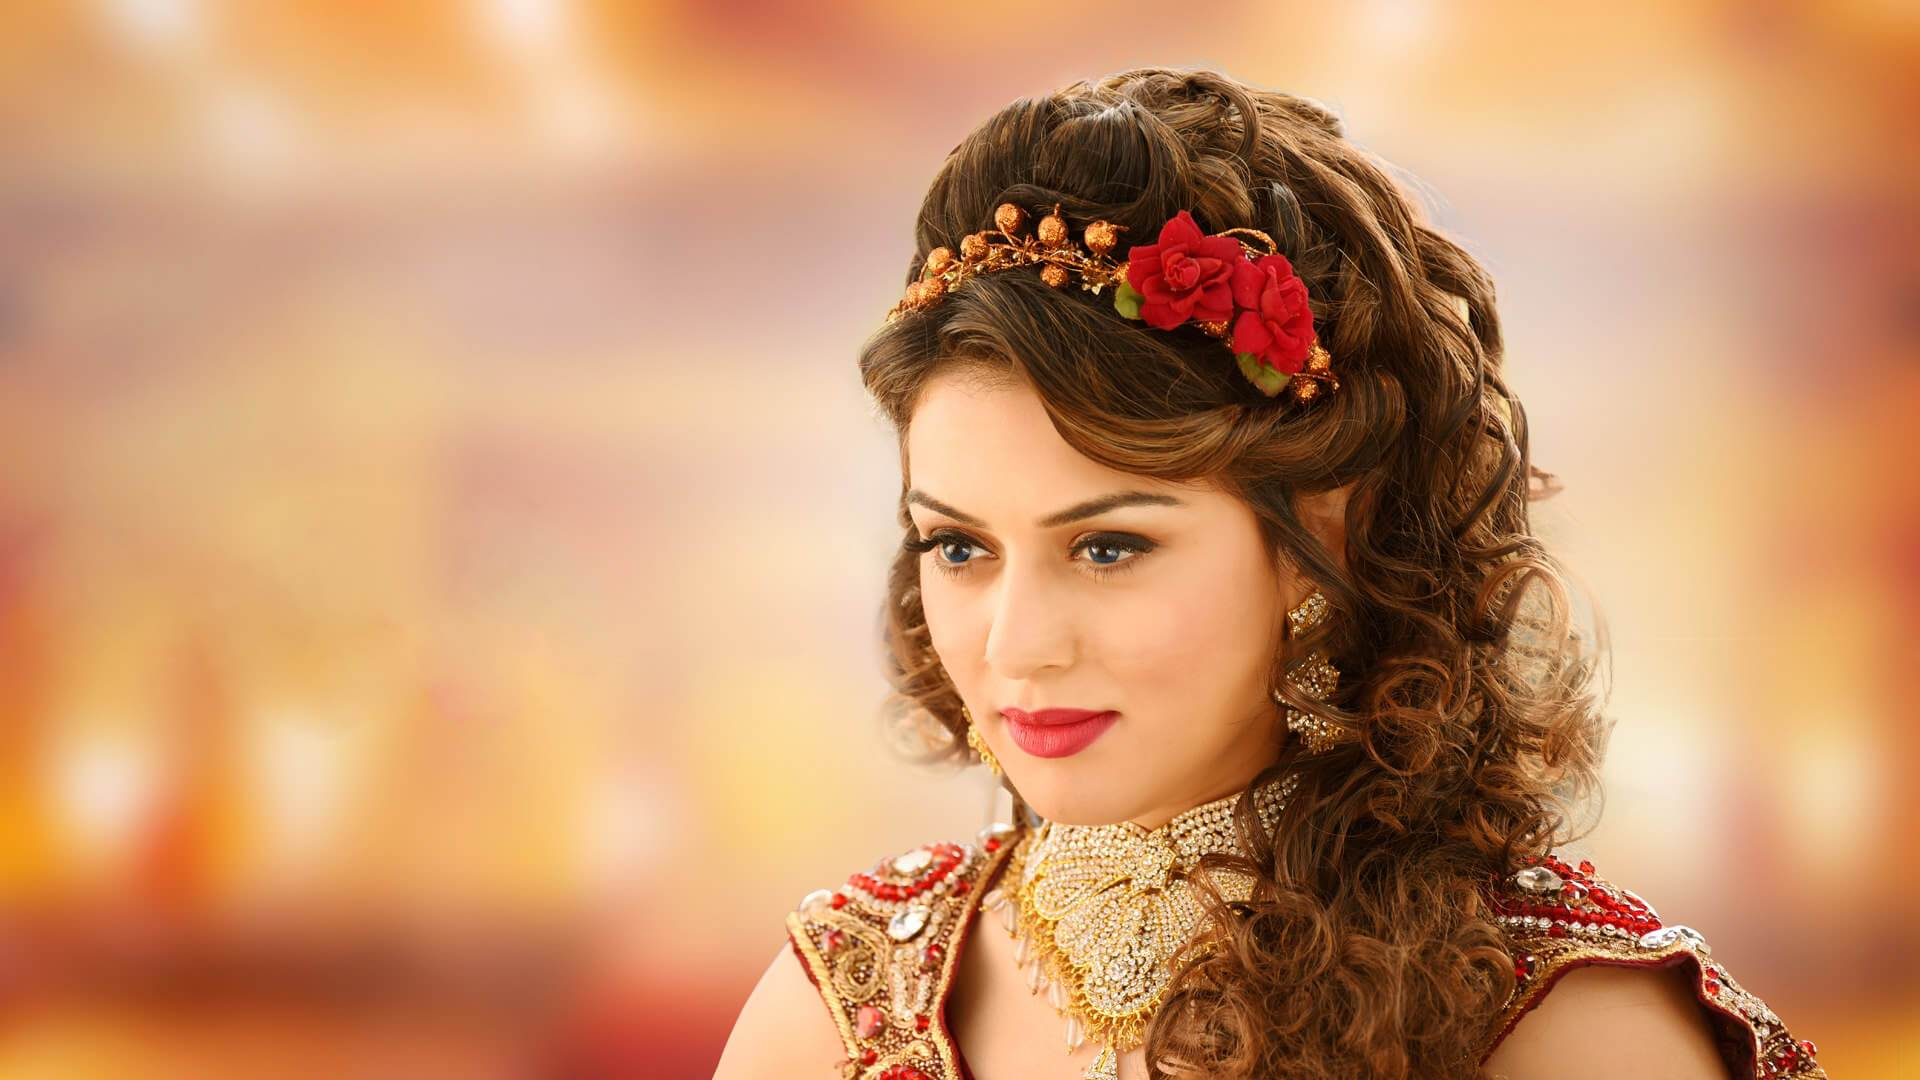 stunning hansika motwani fantastic face mobile free background hd desktop wallpaper